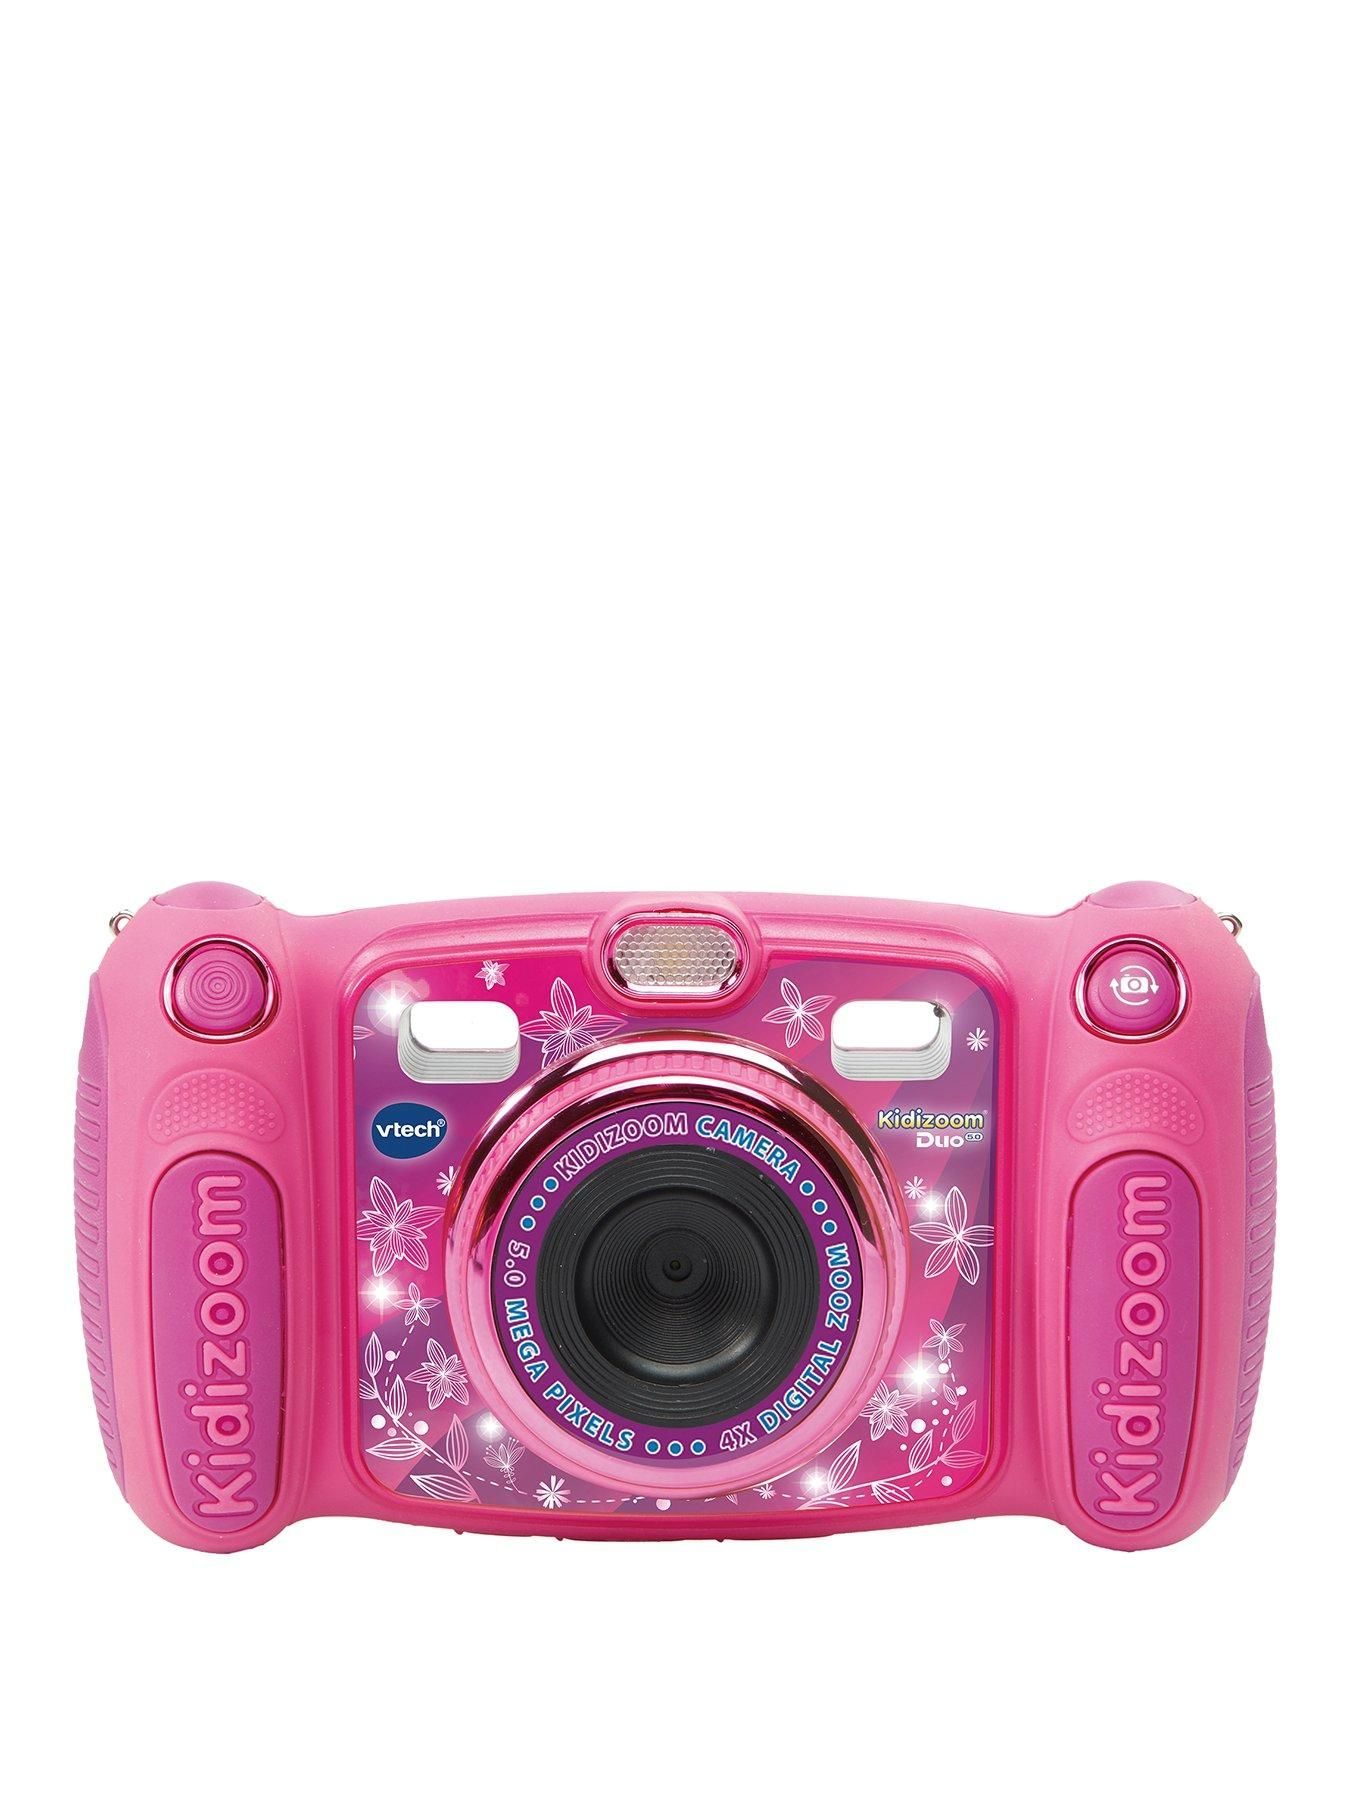 Kidizoom Duo 5 0 Pink Christmas Presents For Girls Fun Learning Games Learning Toys